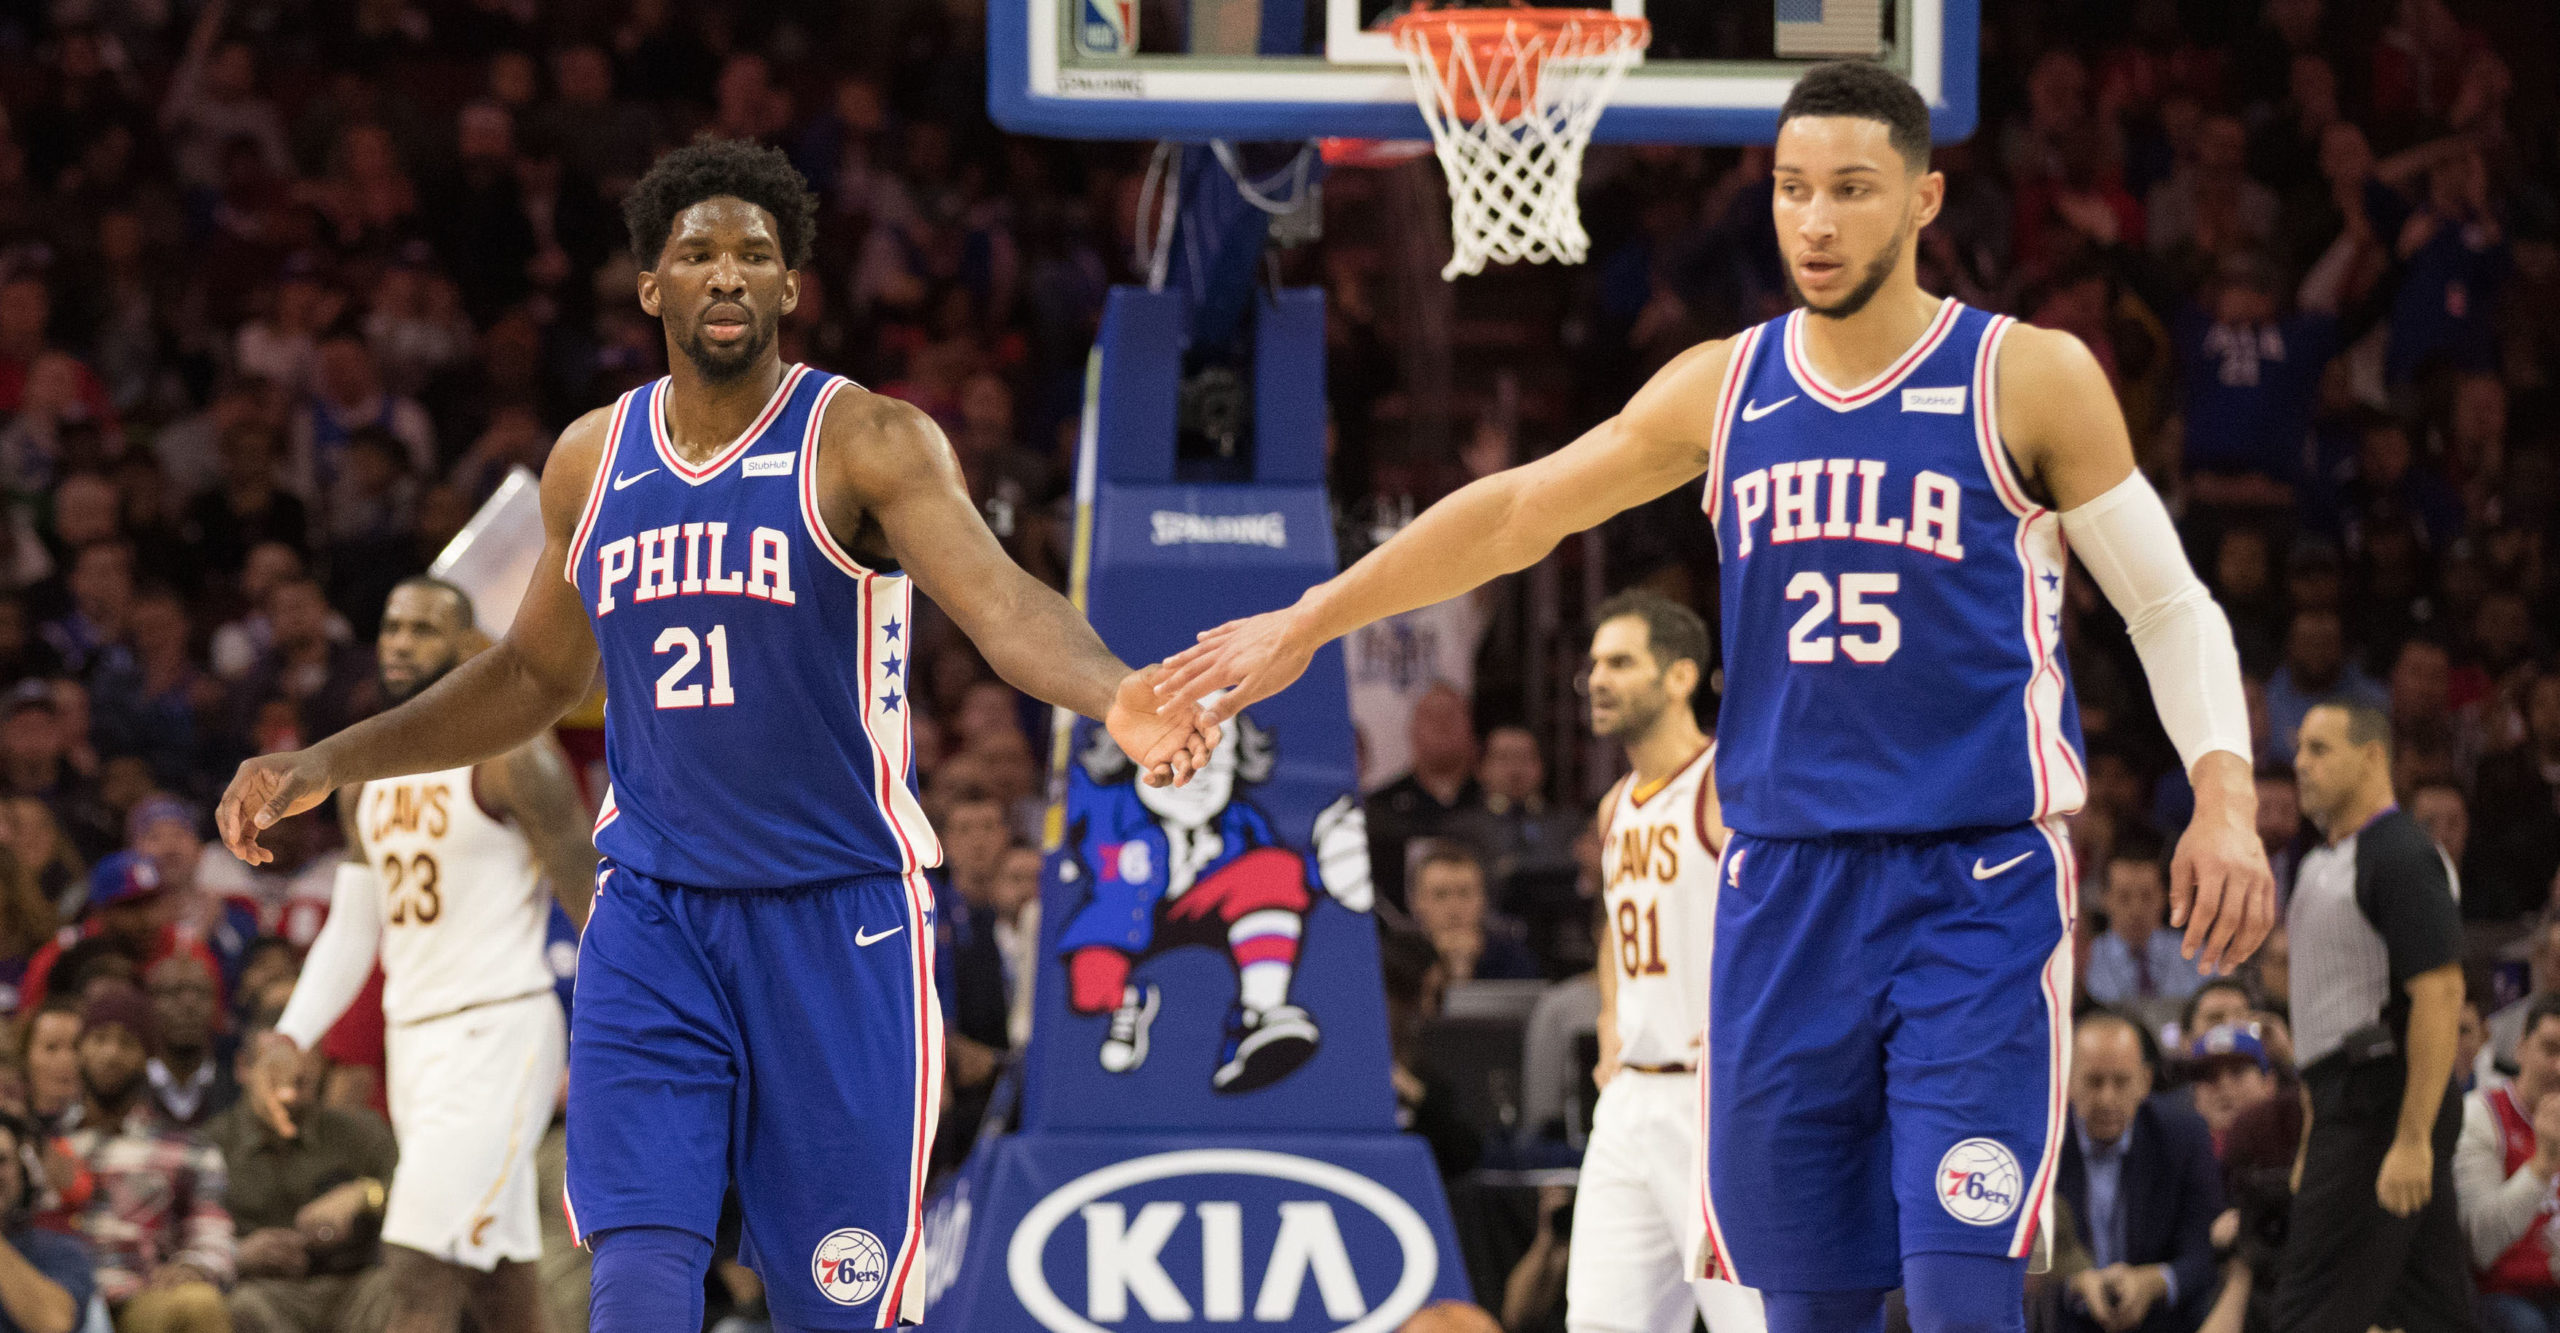 Philadelphia 76ers have to Trade Out Embiid for a Better Offensive Star